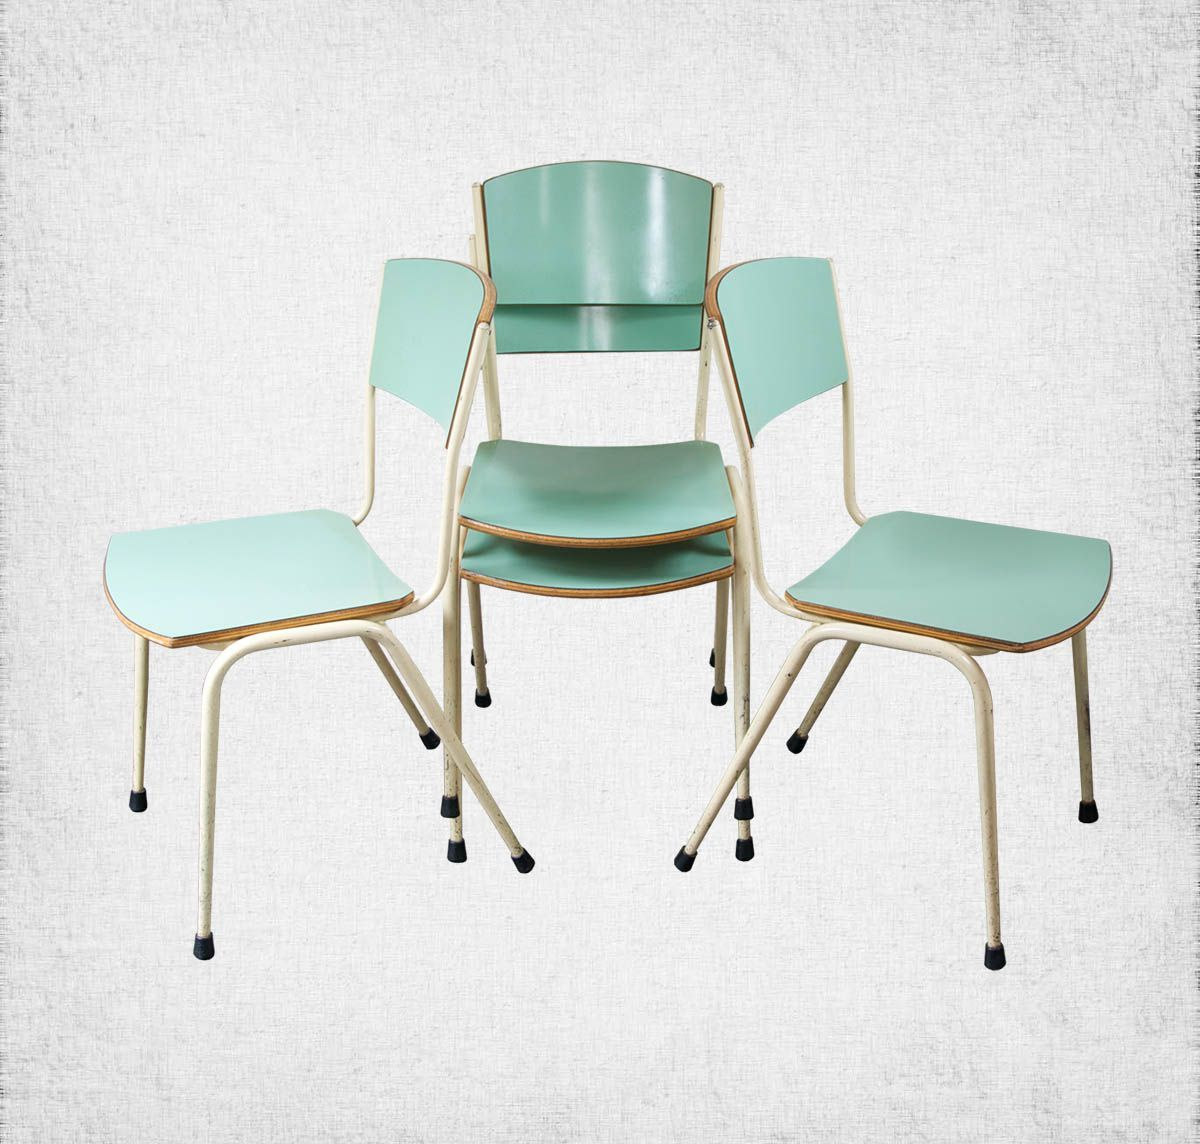 1950's Dining Chairs  Bring It On Home  Urban Retro  Pinterest Brilliant 1950 Kitchen Table And Chairs Inspiration